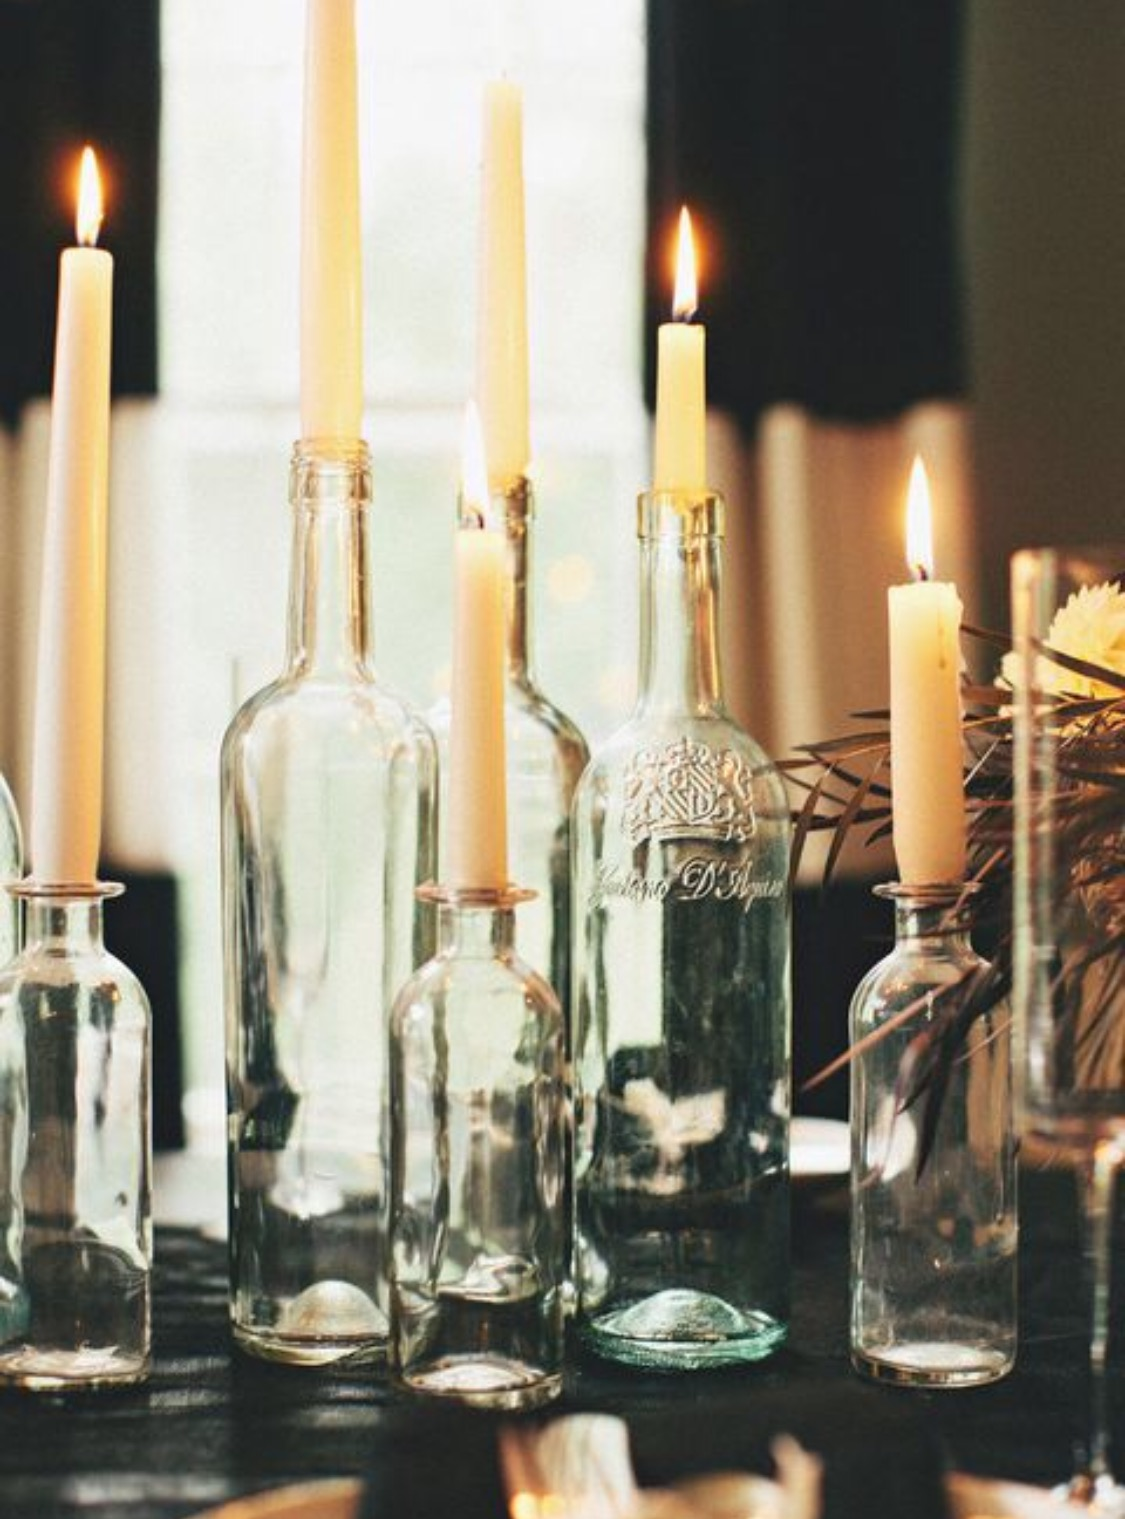 How to decorate for Halloween the Slay way